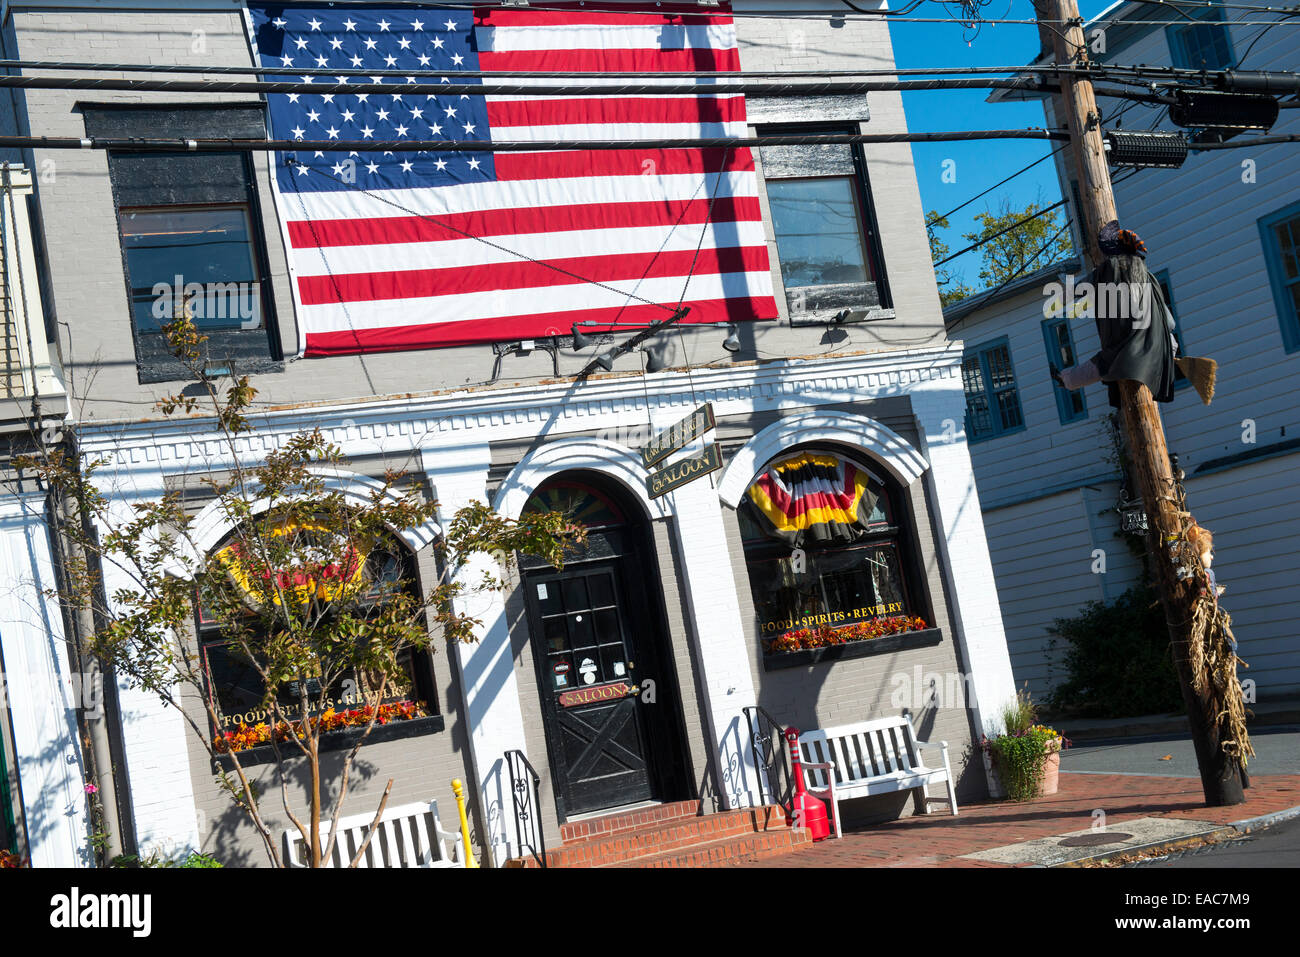 Carpenter St Saloon à Saint Michaels, Maryland USA Photo Stock